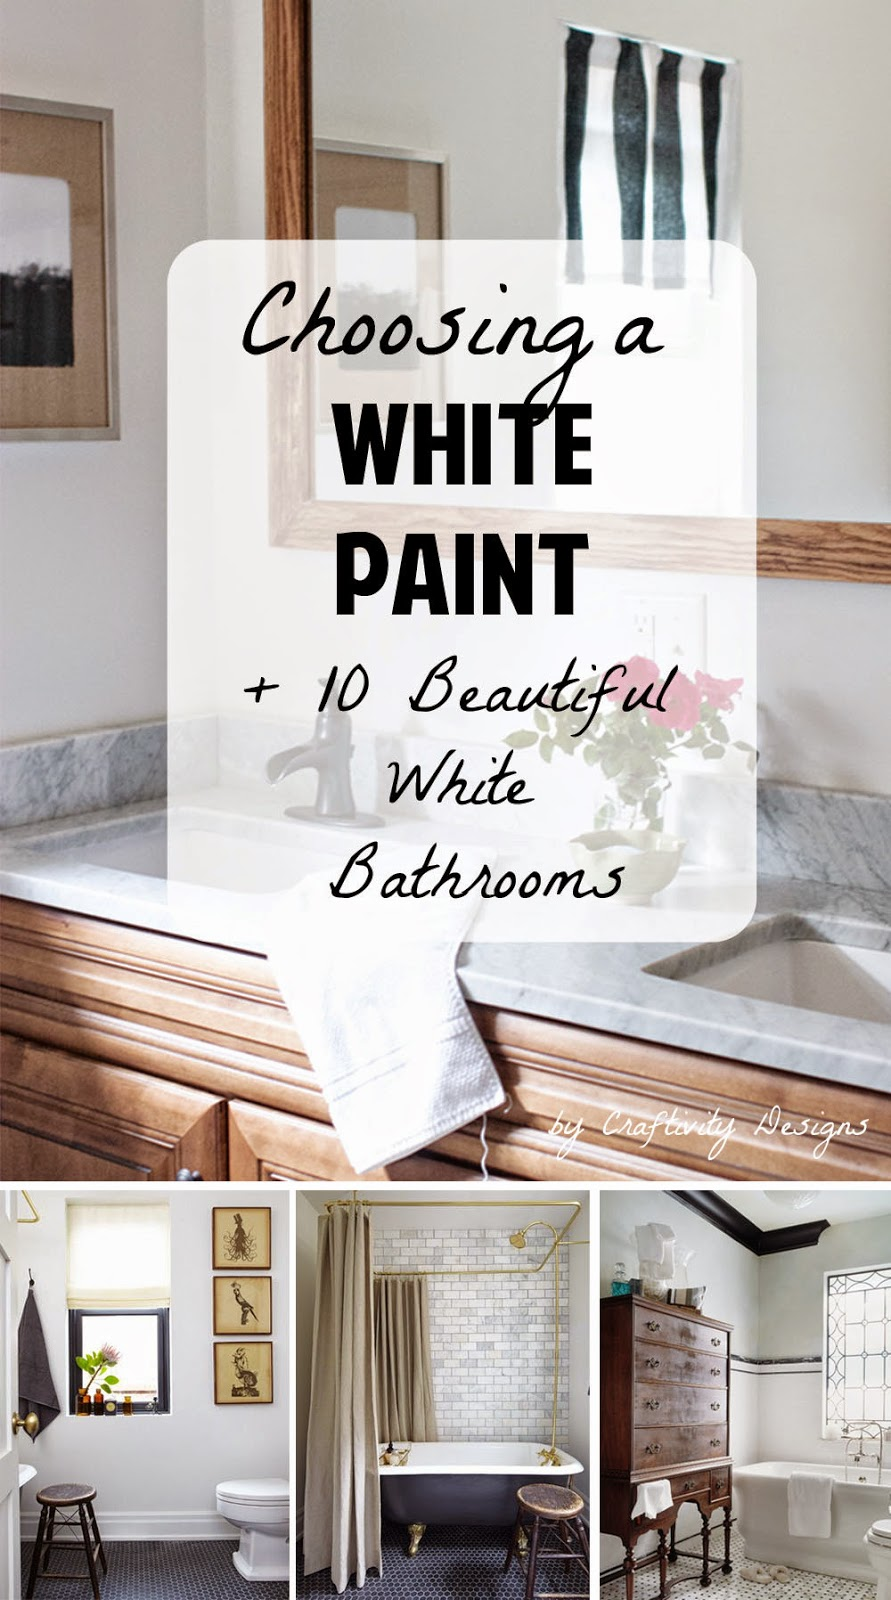 Painting a Room White // 10 Beautiful White Bathrooms – Craftivity ...